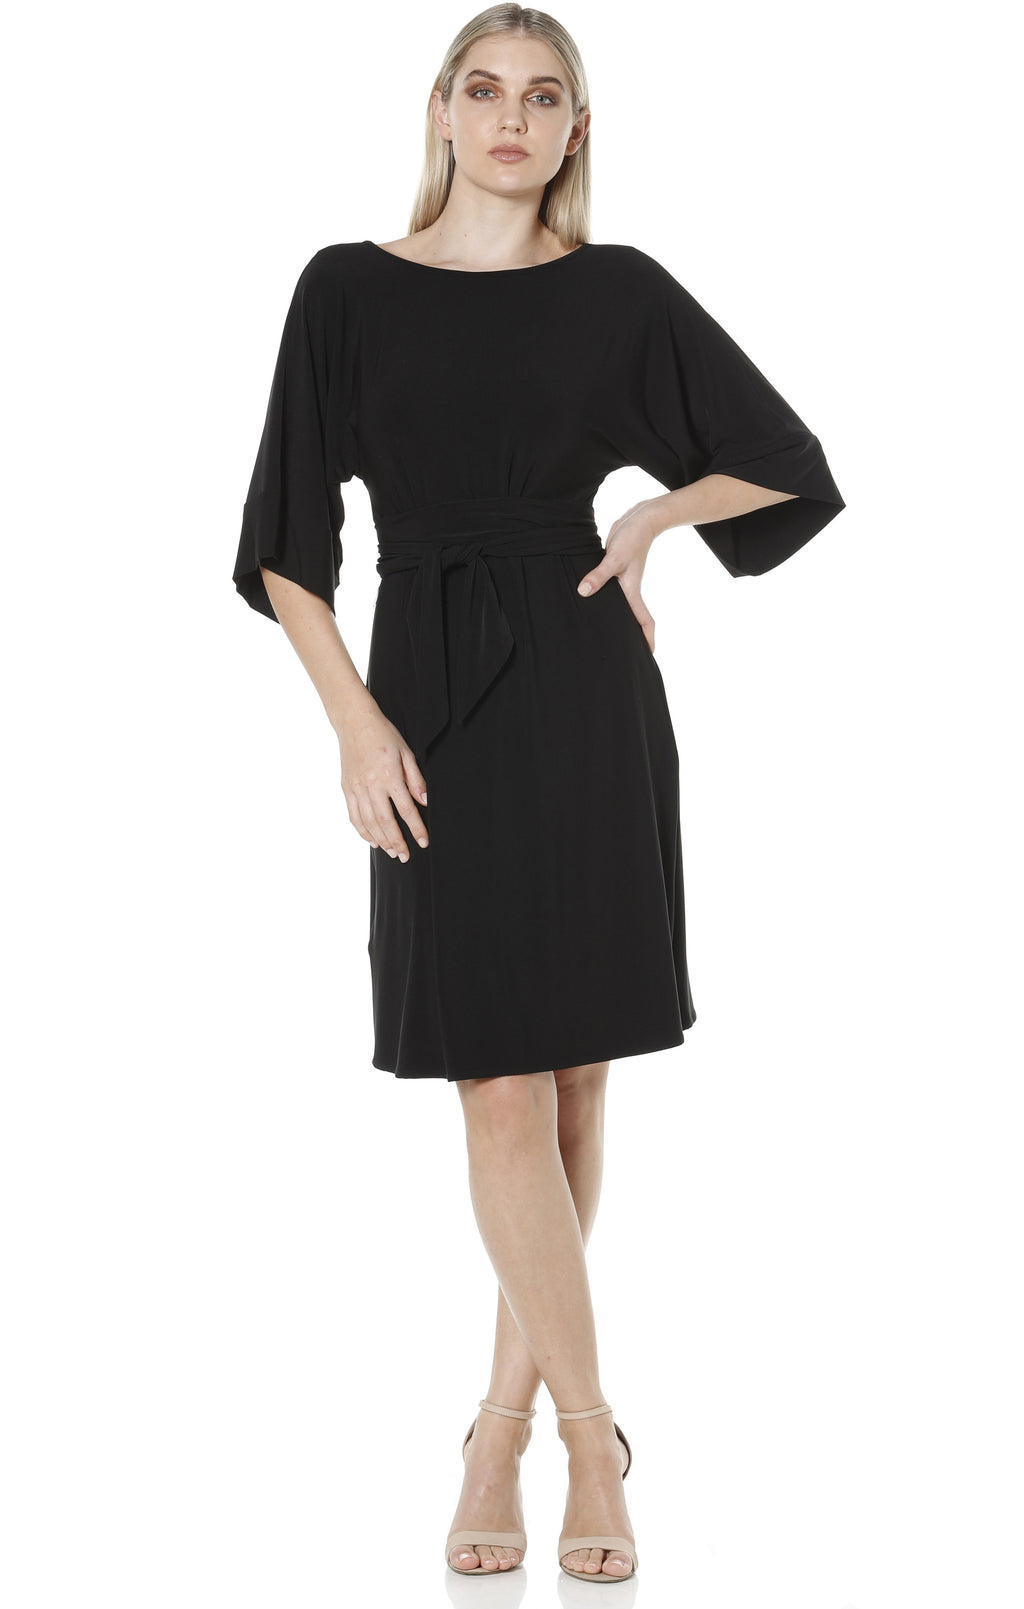 Kimono Reversible Tunic Dress - Black